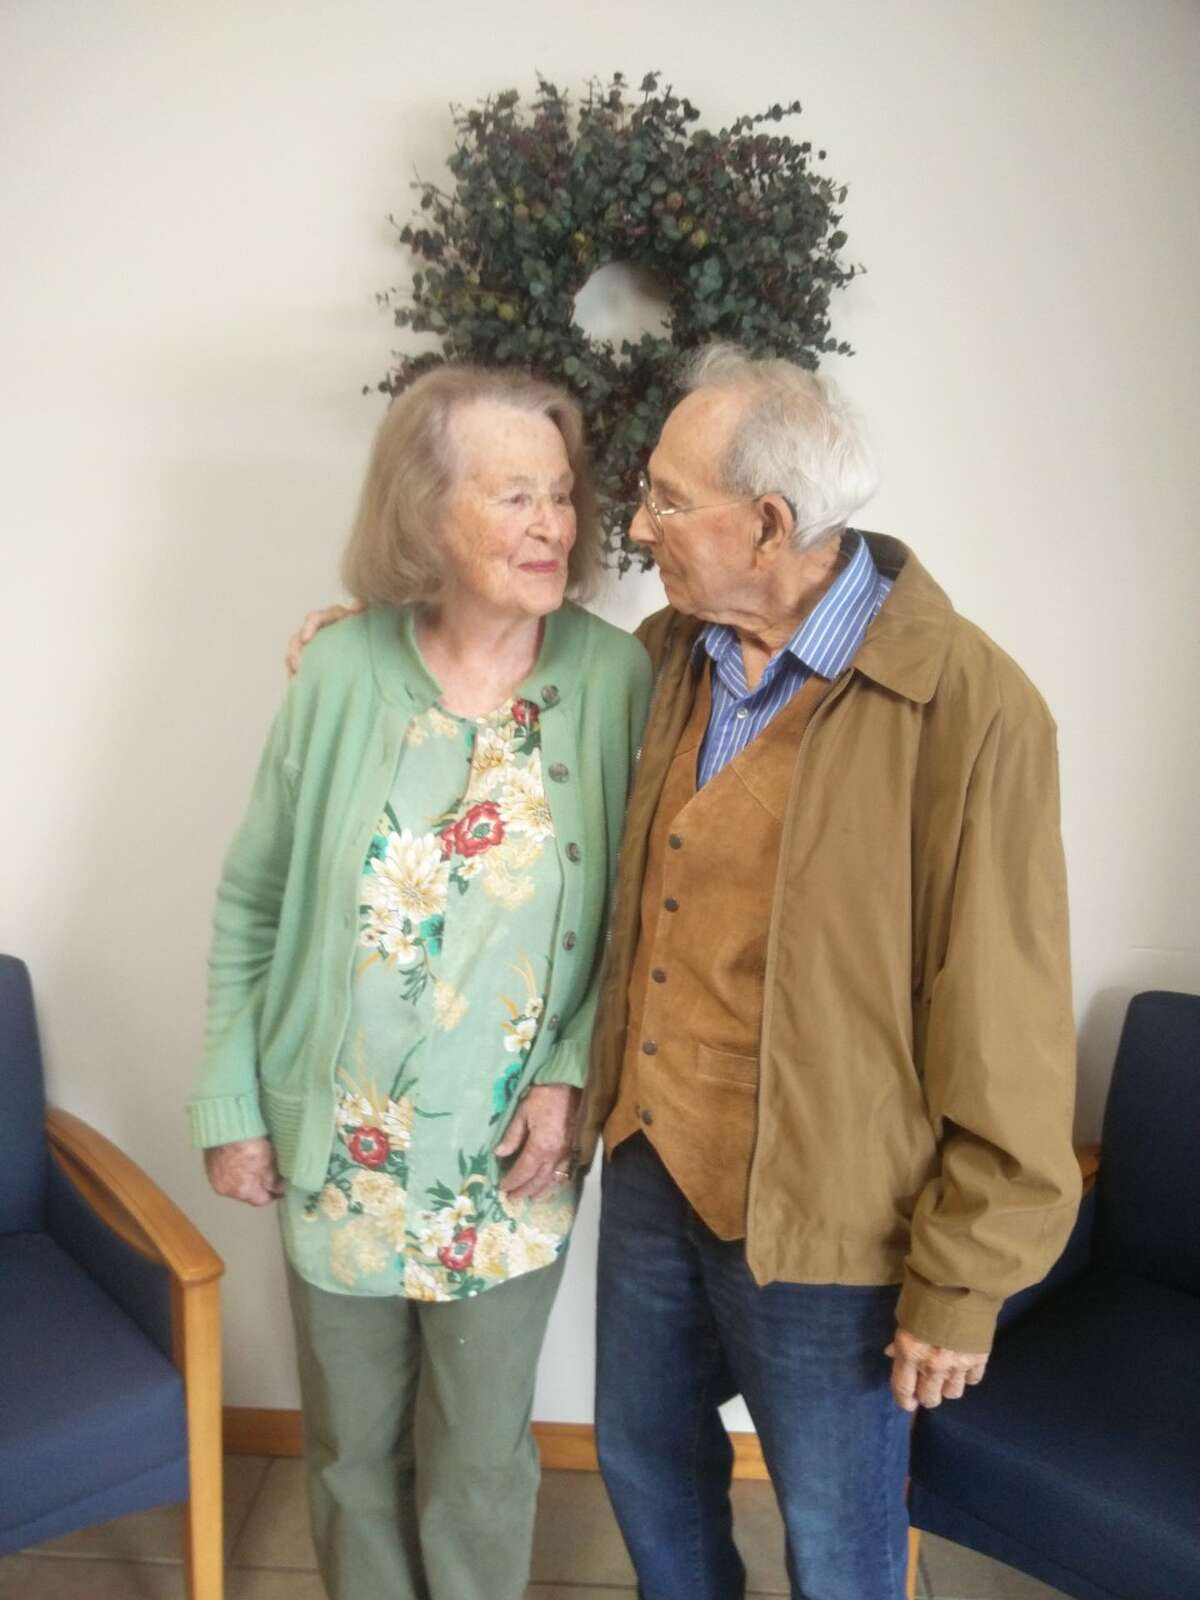 98-year-olds Ed and Eleanor Schlafley celebrated their 78th wedding anniversary in September 2020. The Manistee couple credit their successful marriage to faith in God.